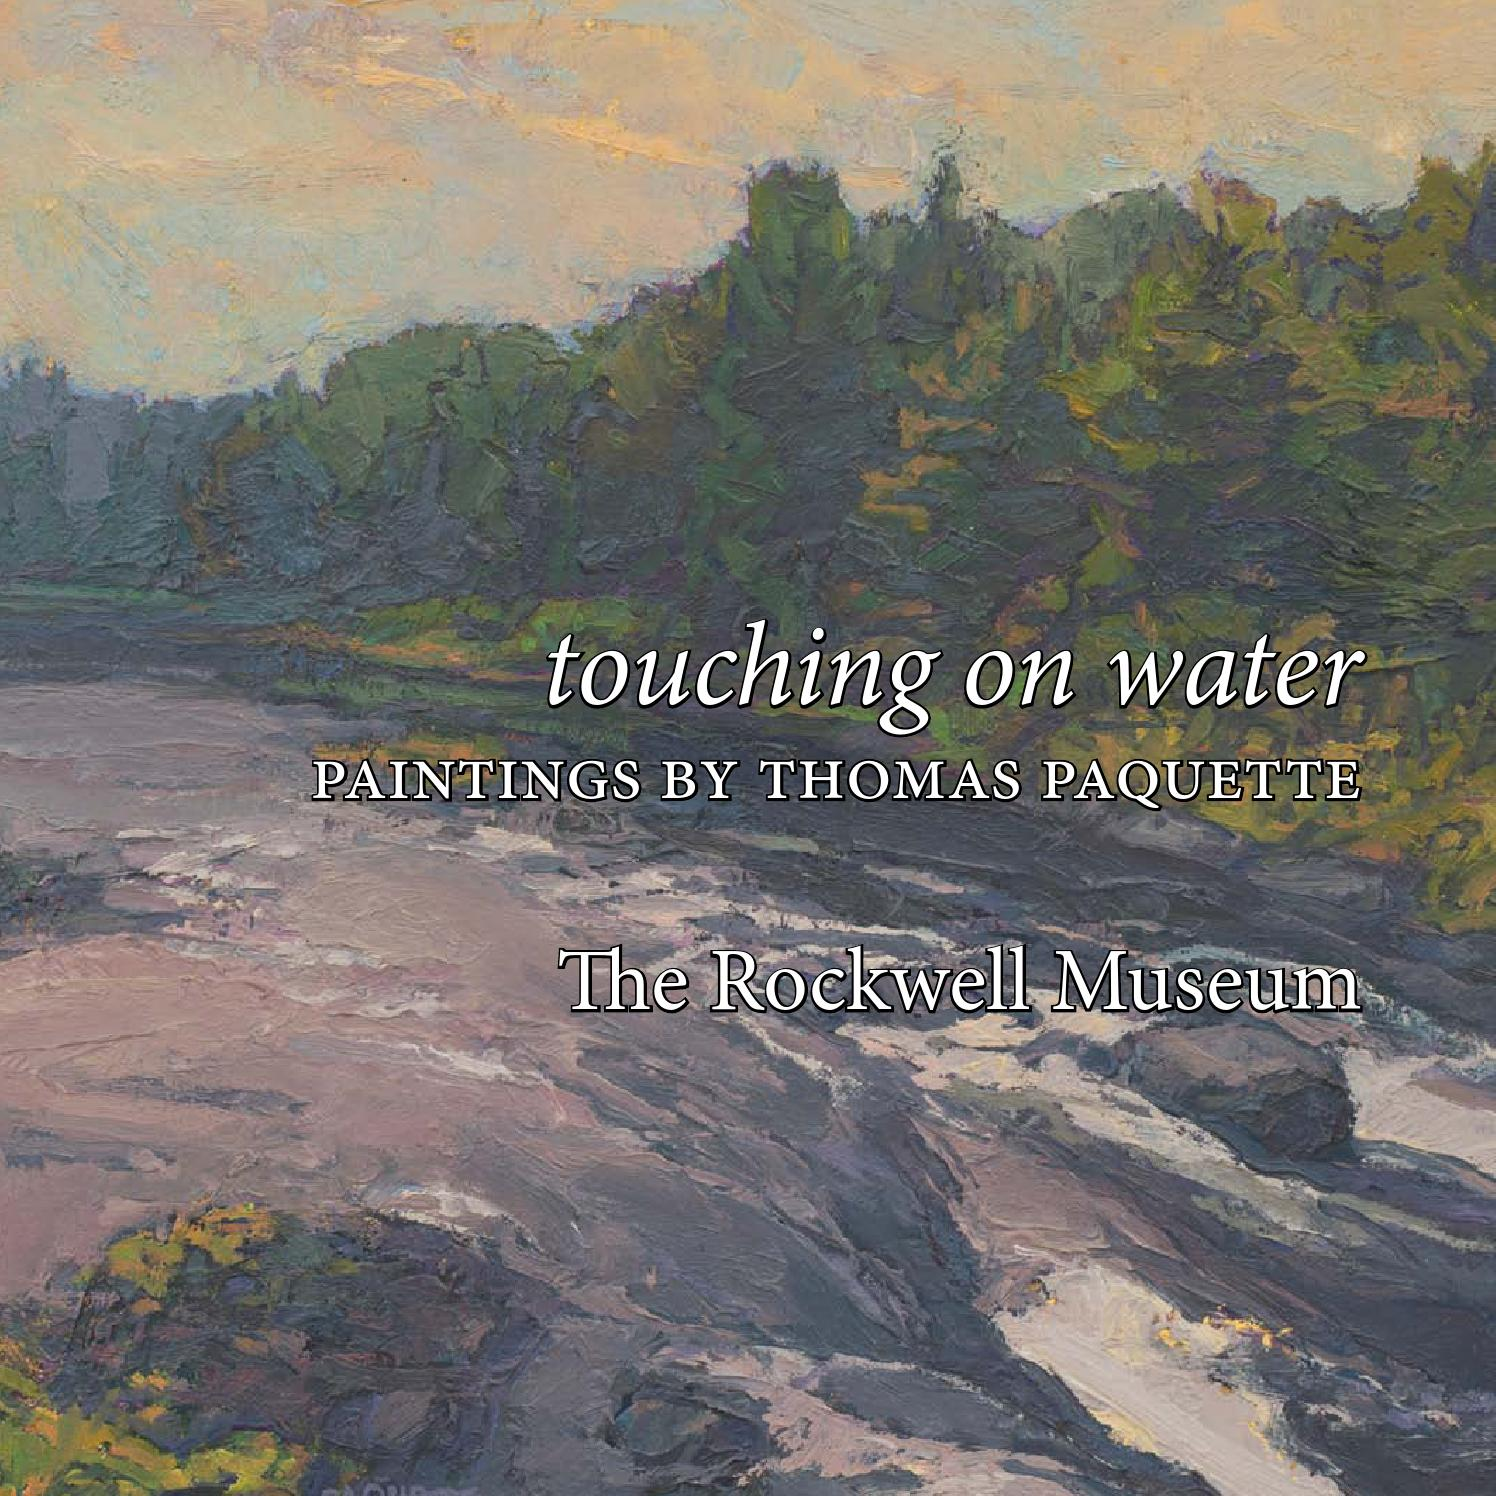 Touching on Water - Paintings by Thomas Paquette at the Rockwell Museum